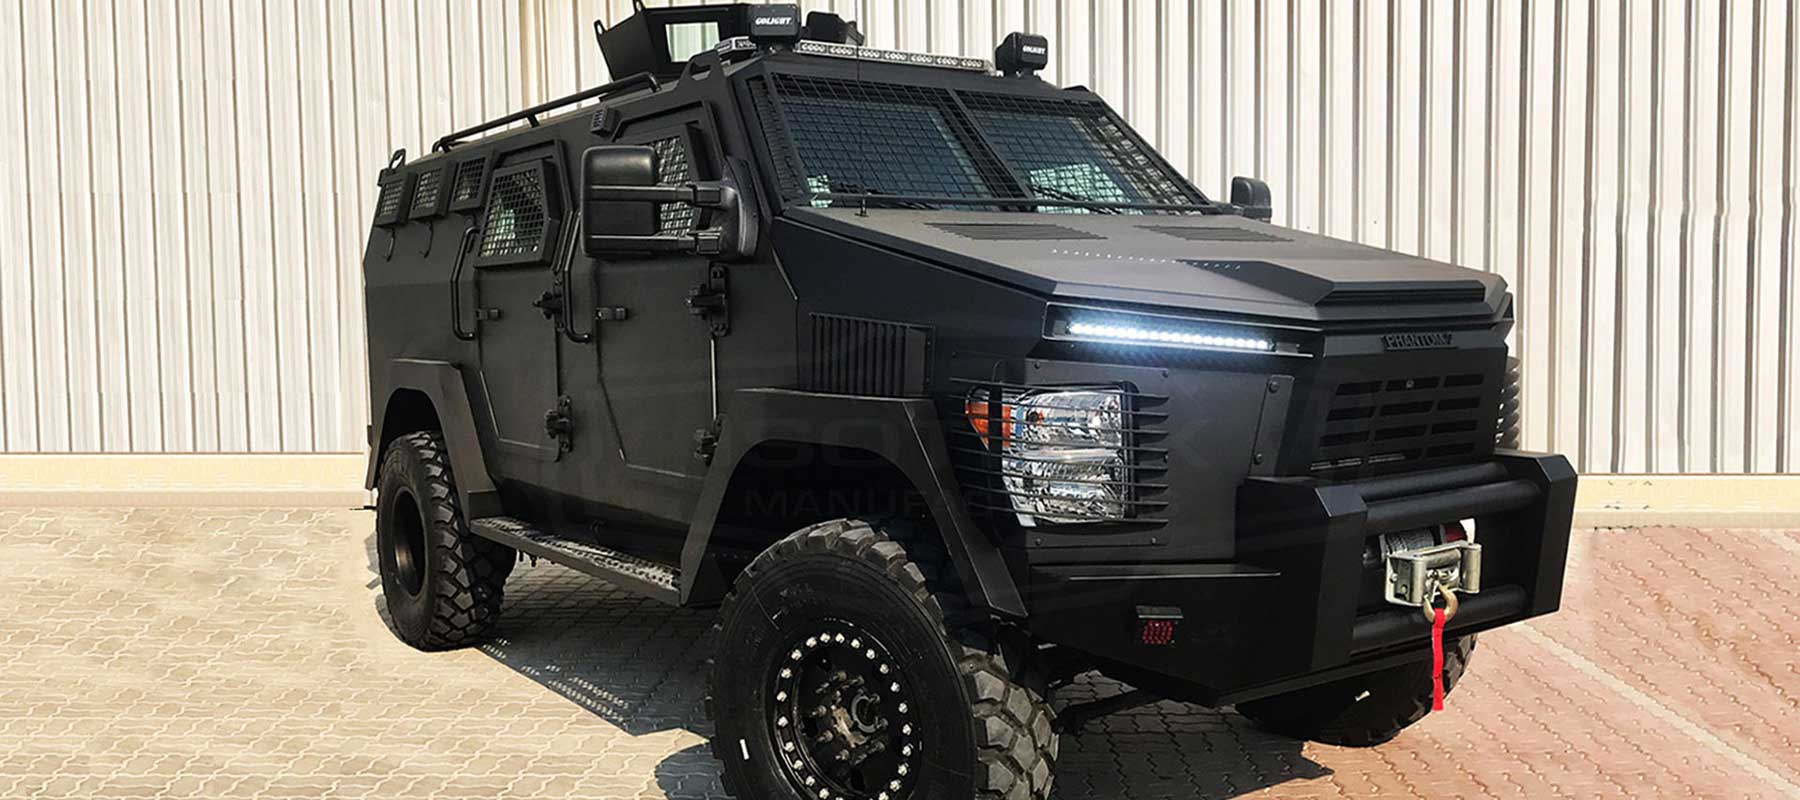 Isotrex Phantom V2 - Armored Personnel Carriers